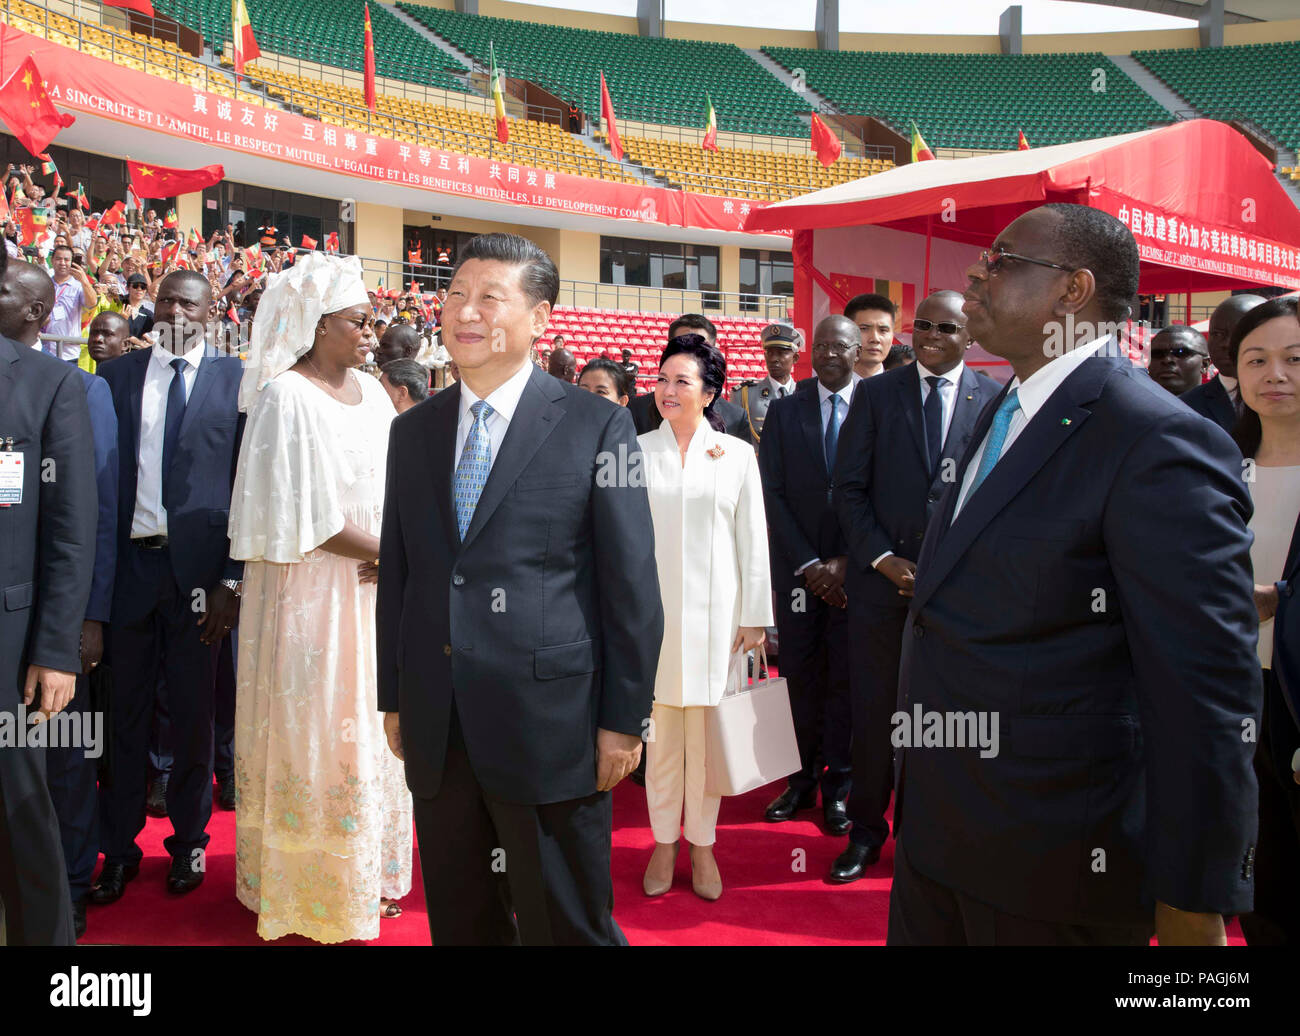 Dakar, Senegal. 22nd July, 2018. Chinese President Xi Jinping and his Senegalese counterpart Macky Sall attend a handover ceremony of the National Wrestling Arena built with Chinese aid in Dakar, Senegal, July 22, 2018. Credit: Wang Ye/Xinhua/Alamy Live News - Stock Image